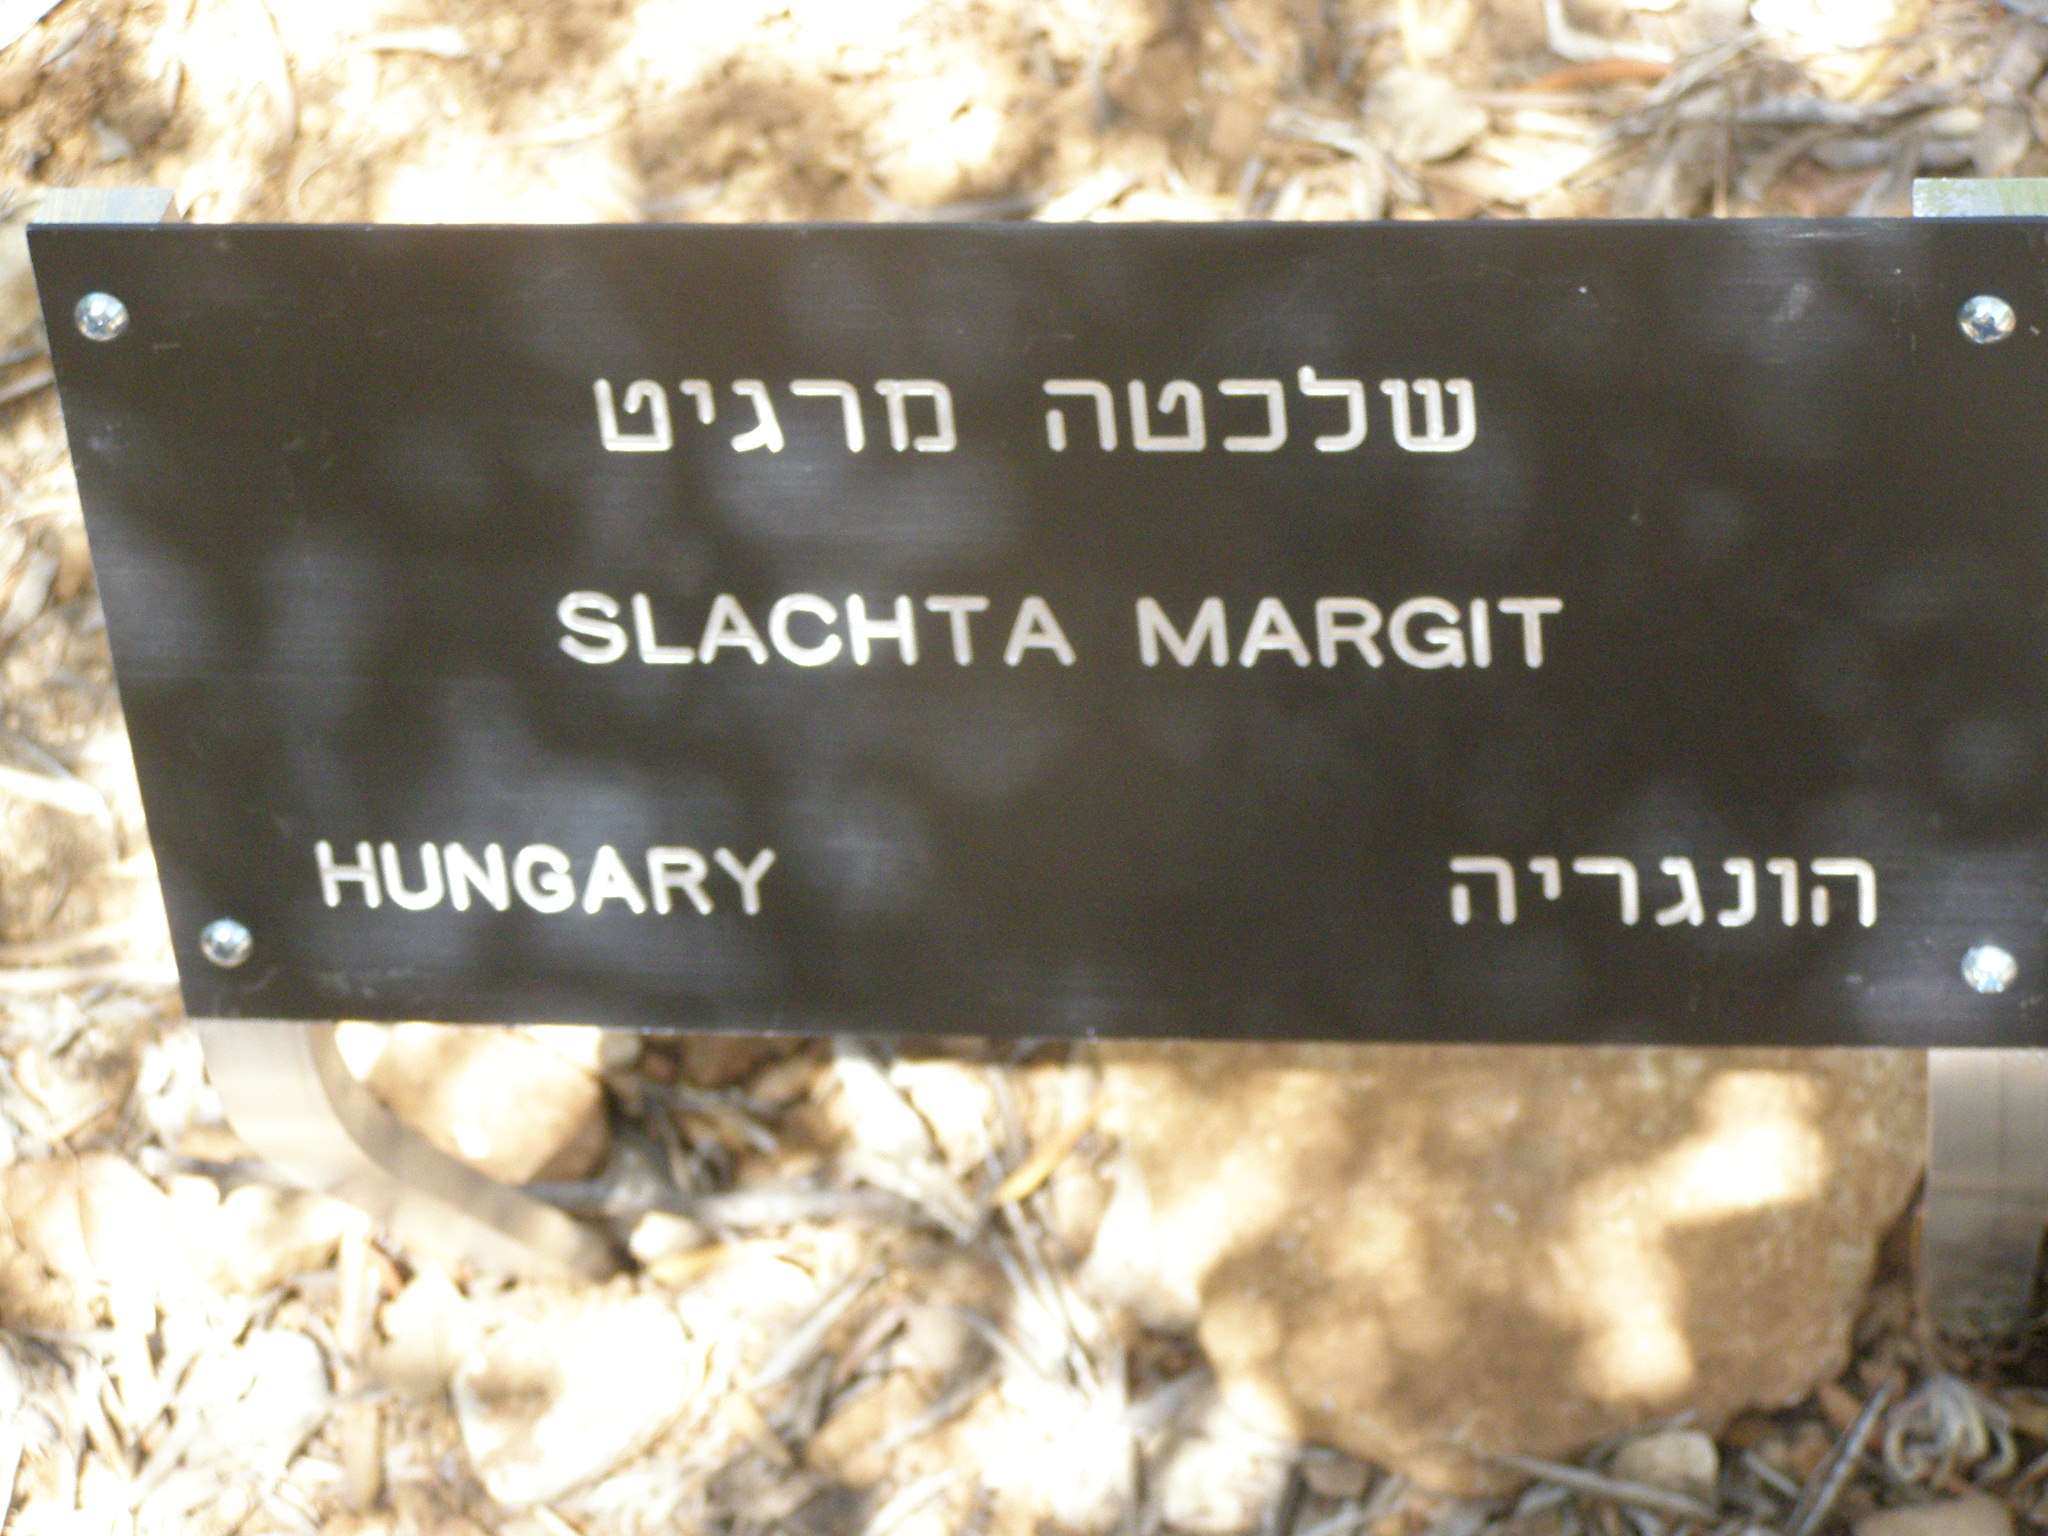 Tree in Honor of Slachta Margit